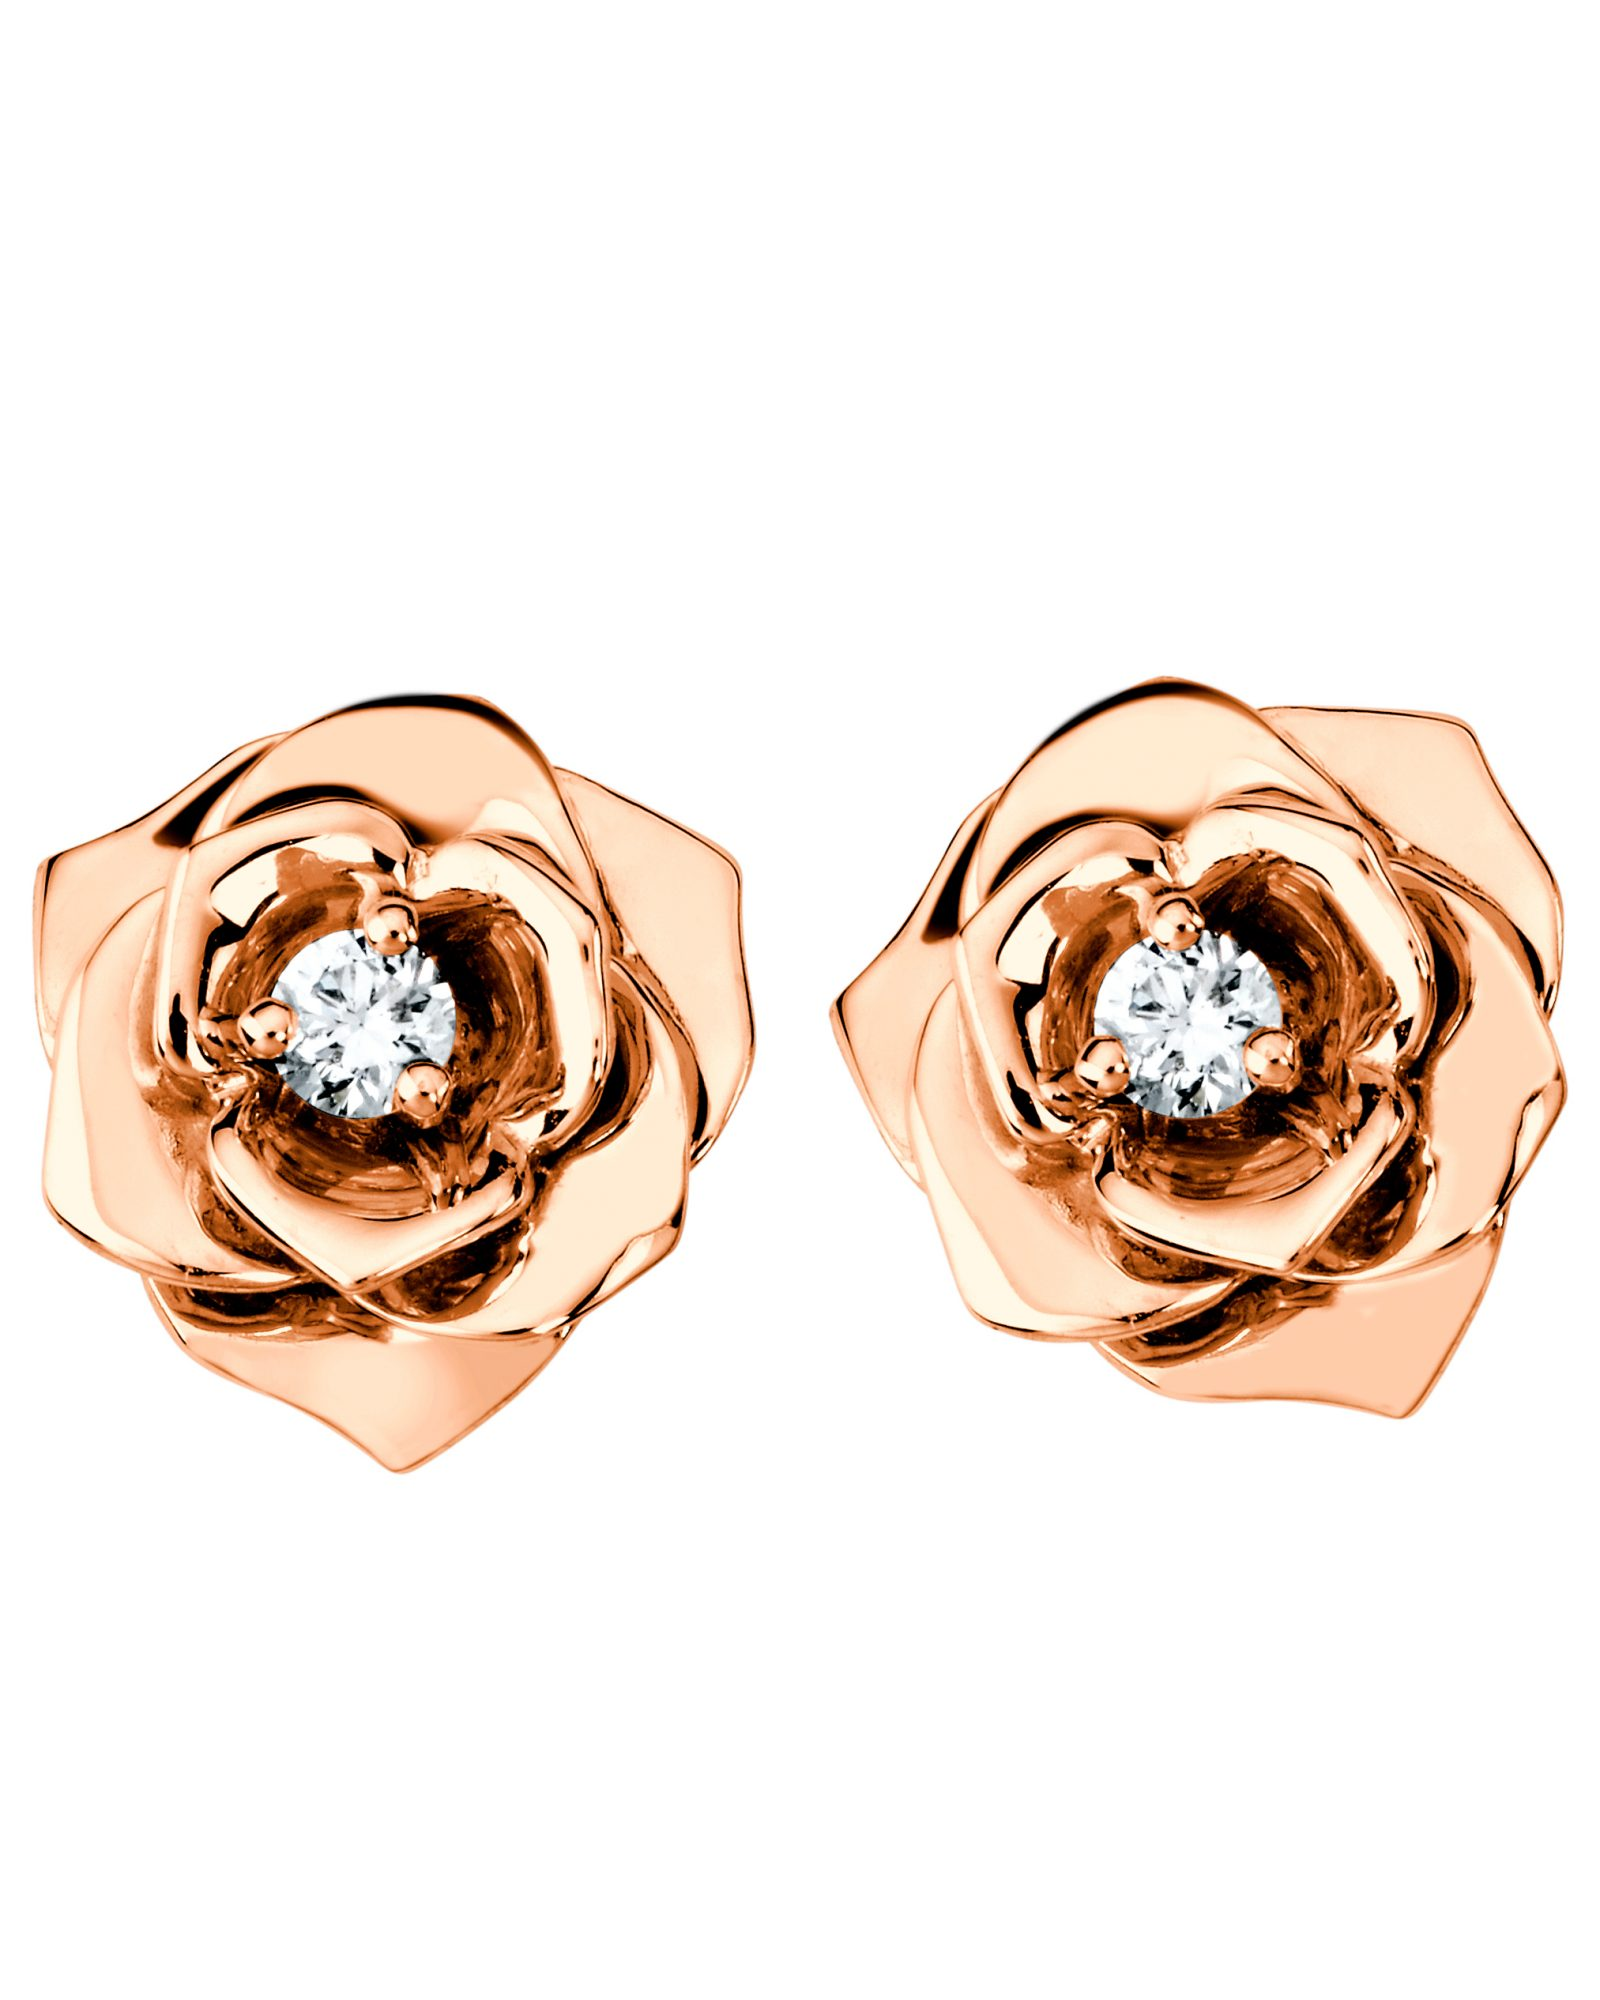 piaget-earrings-0043-v1.jpg